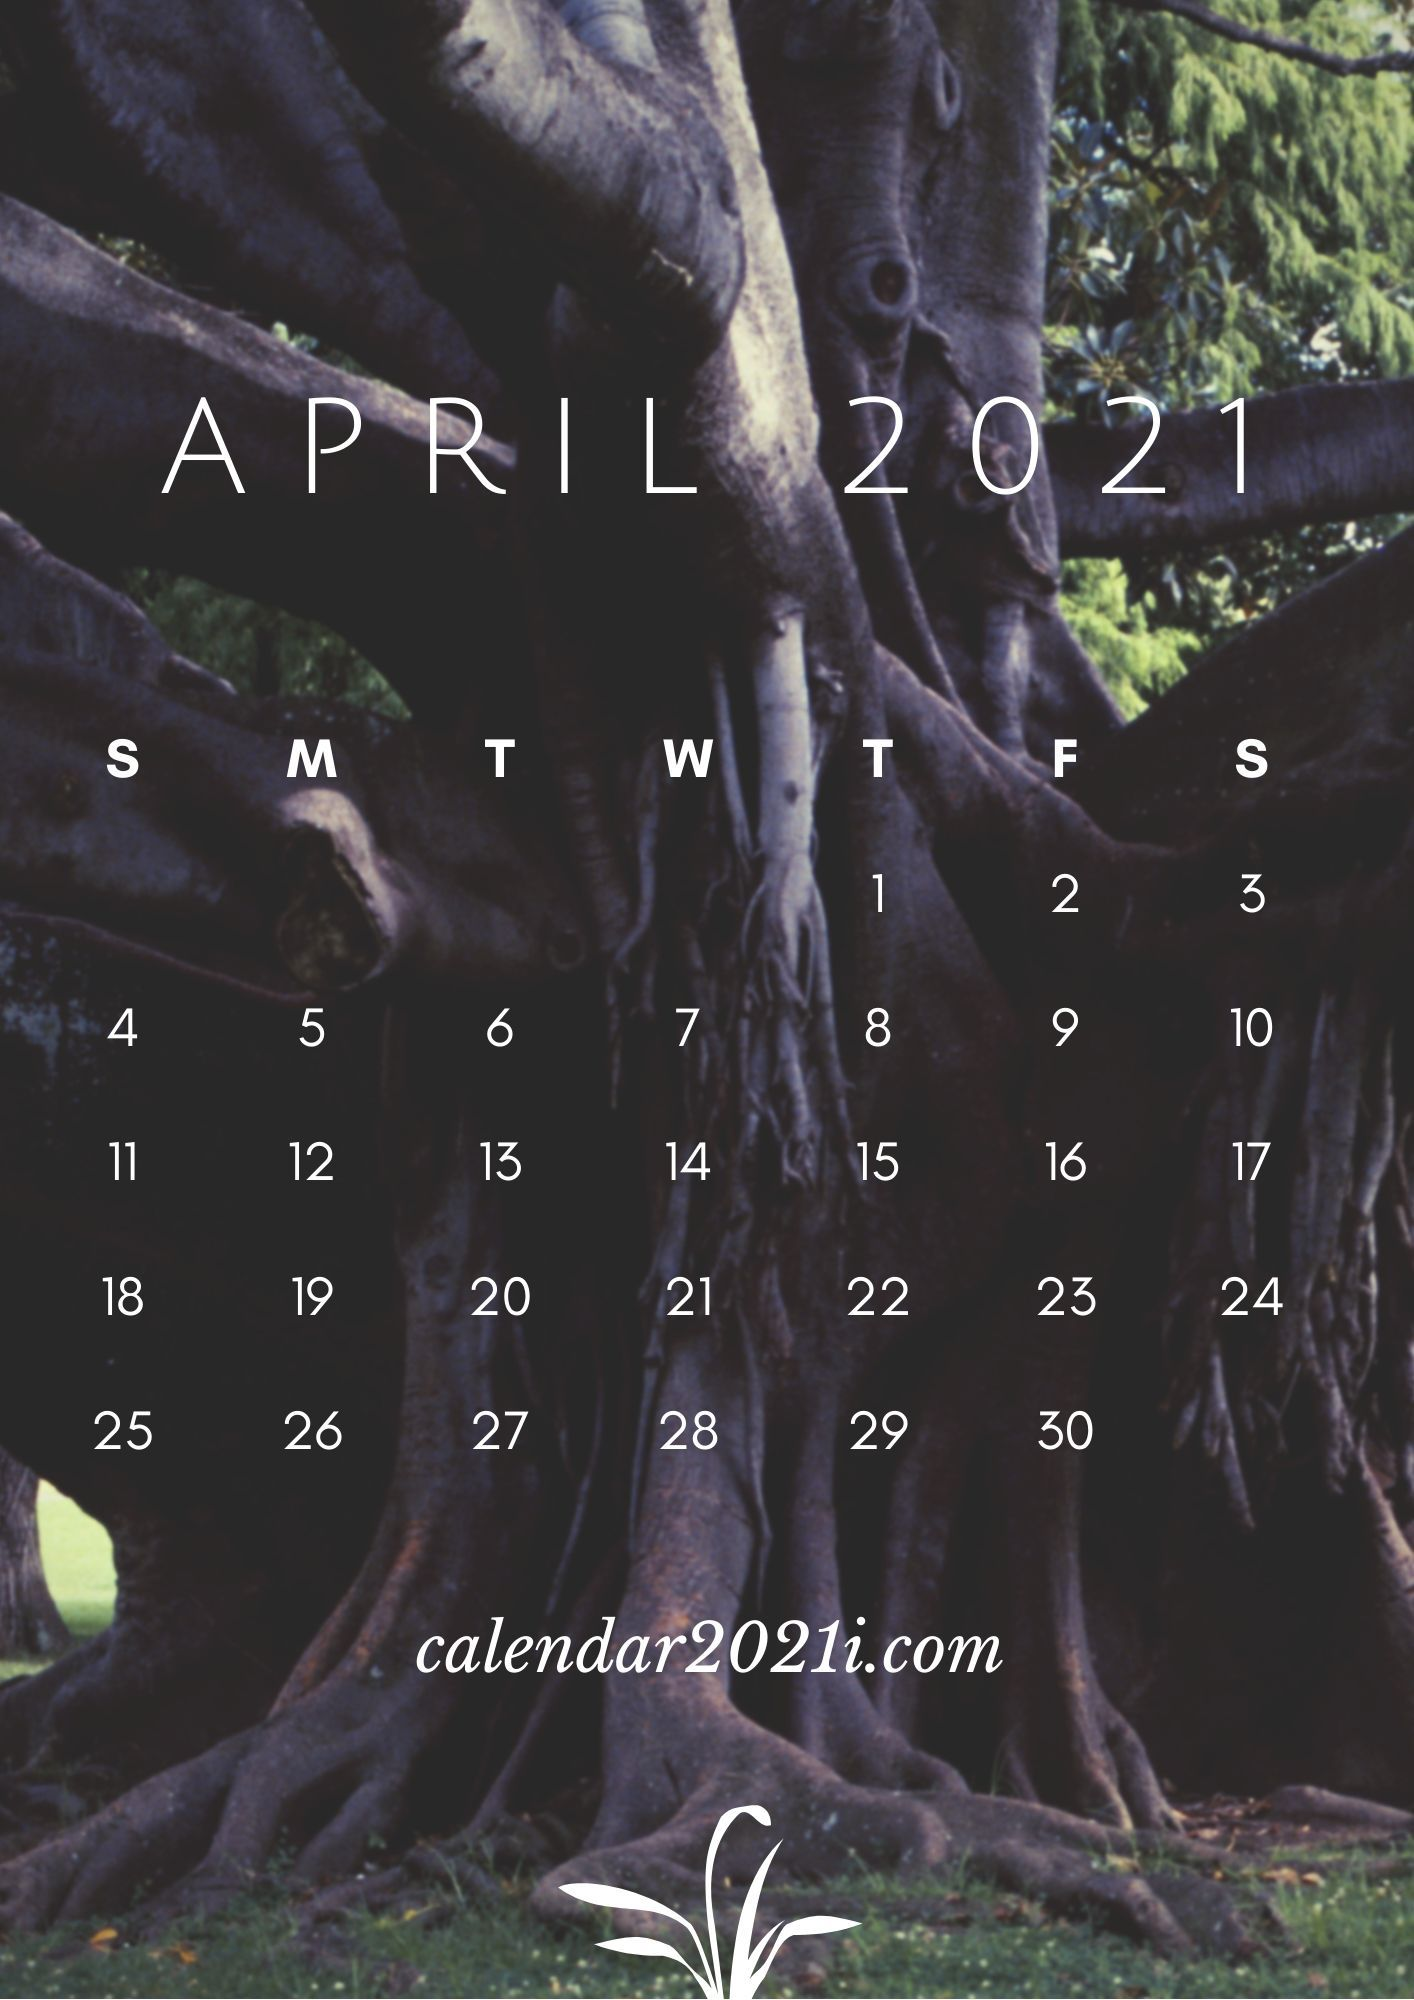 April Calendar 2021 HD Wallpaper for Apple iPhone background 1414x2000